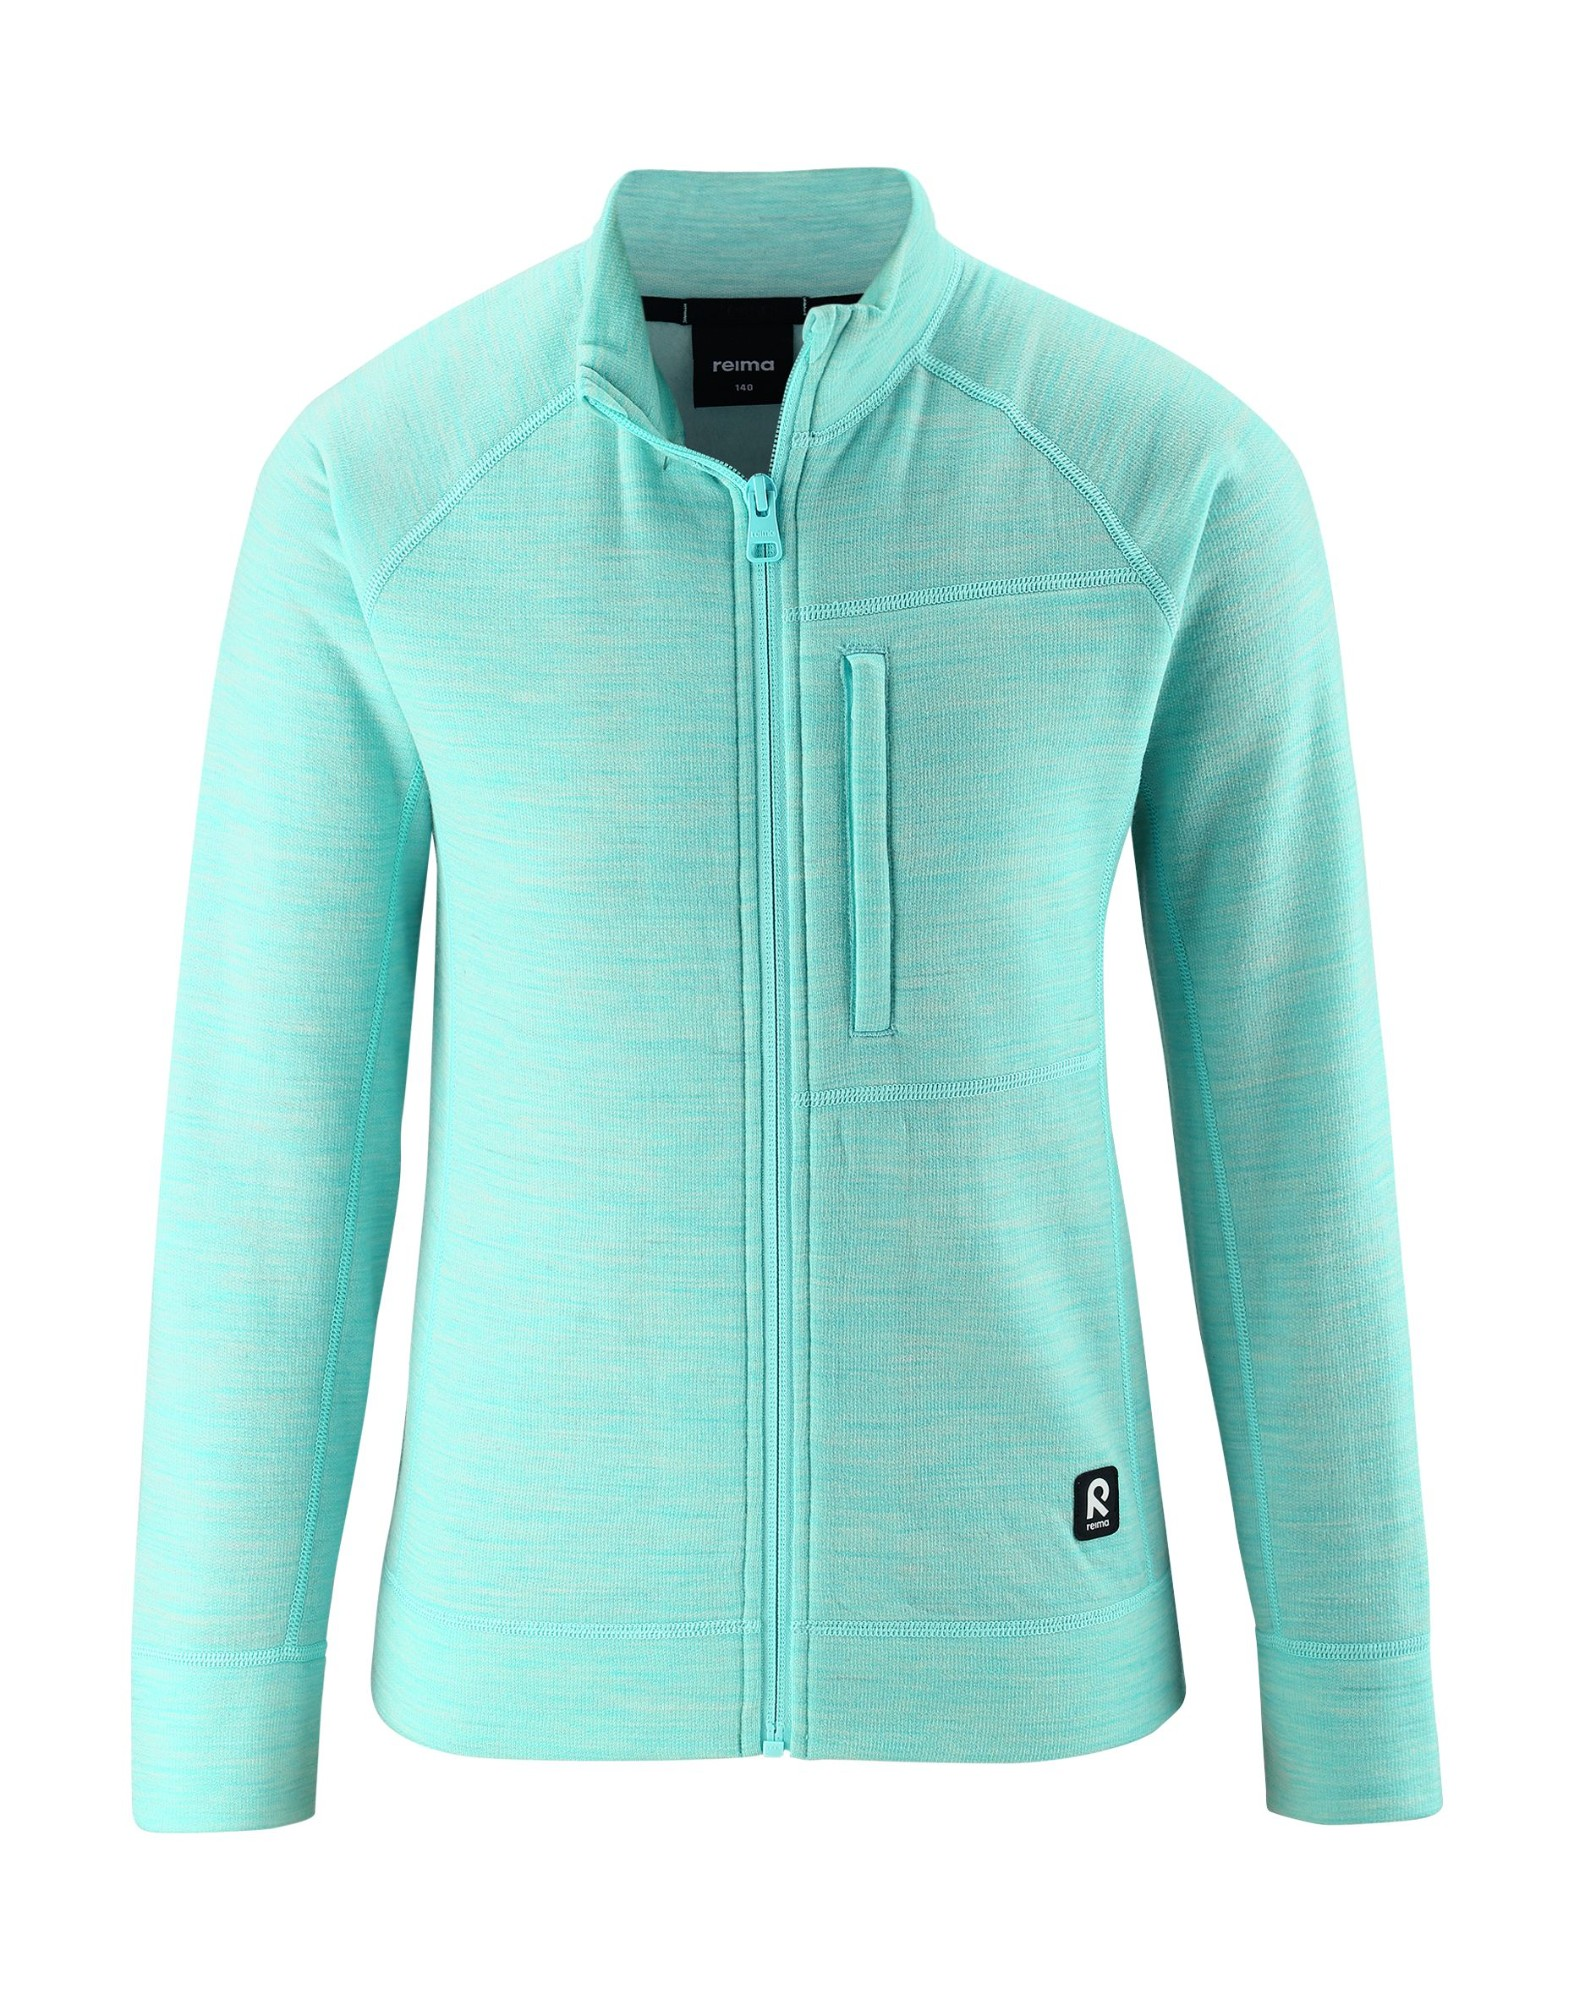 REIMA Mists Light Turquoise 152